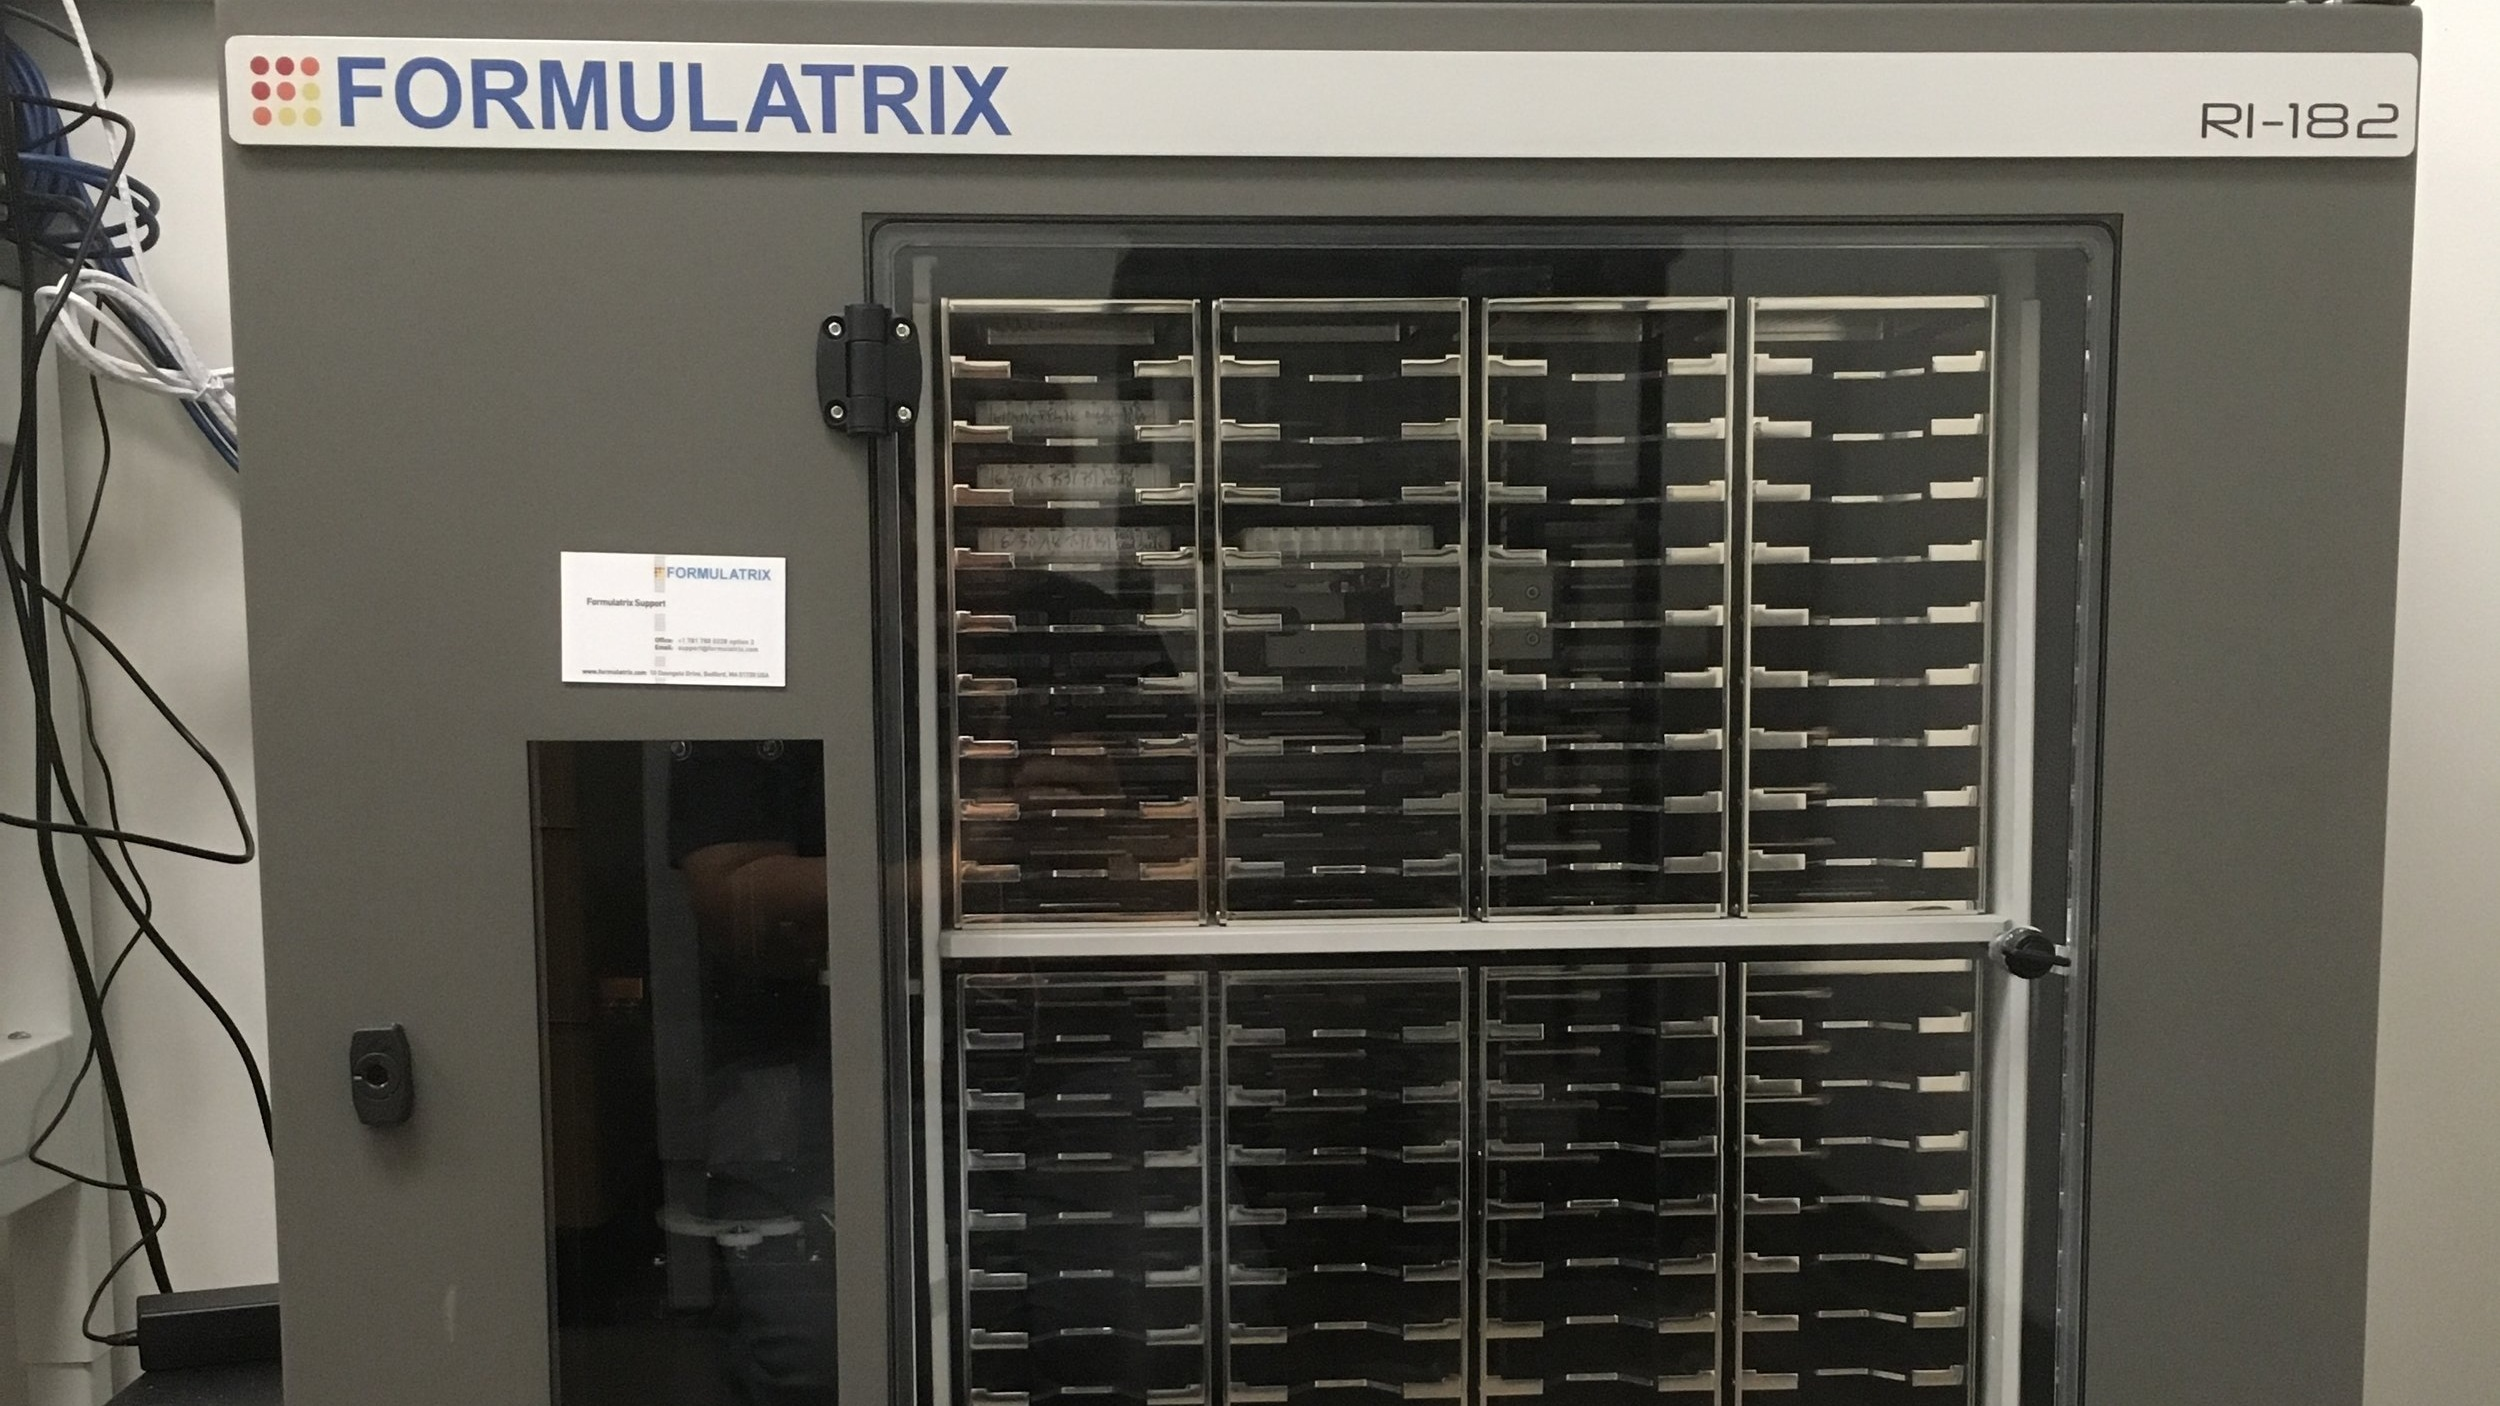 Formulatrix Rock Imager 182